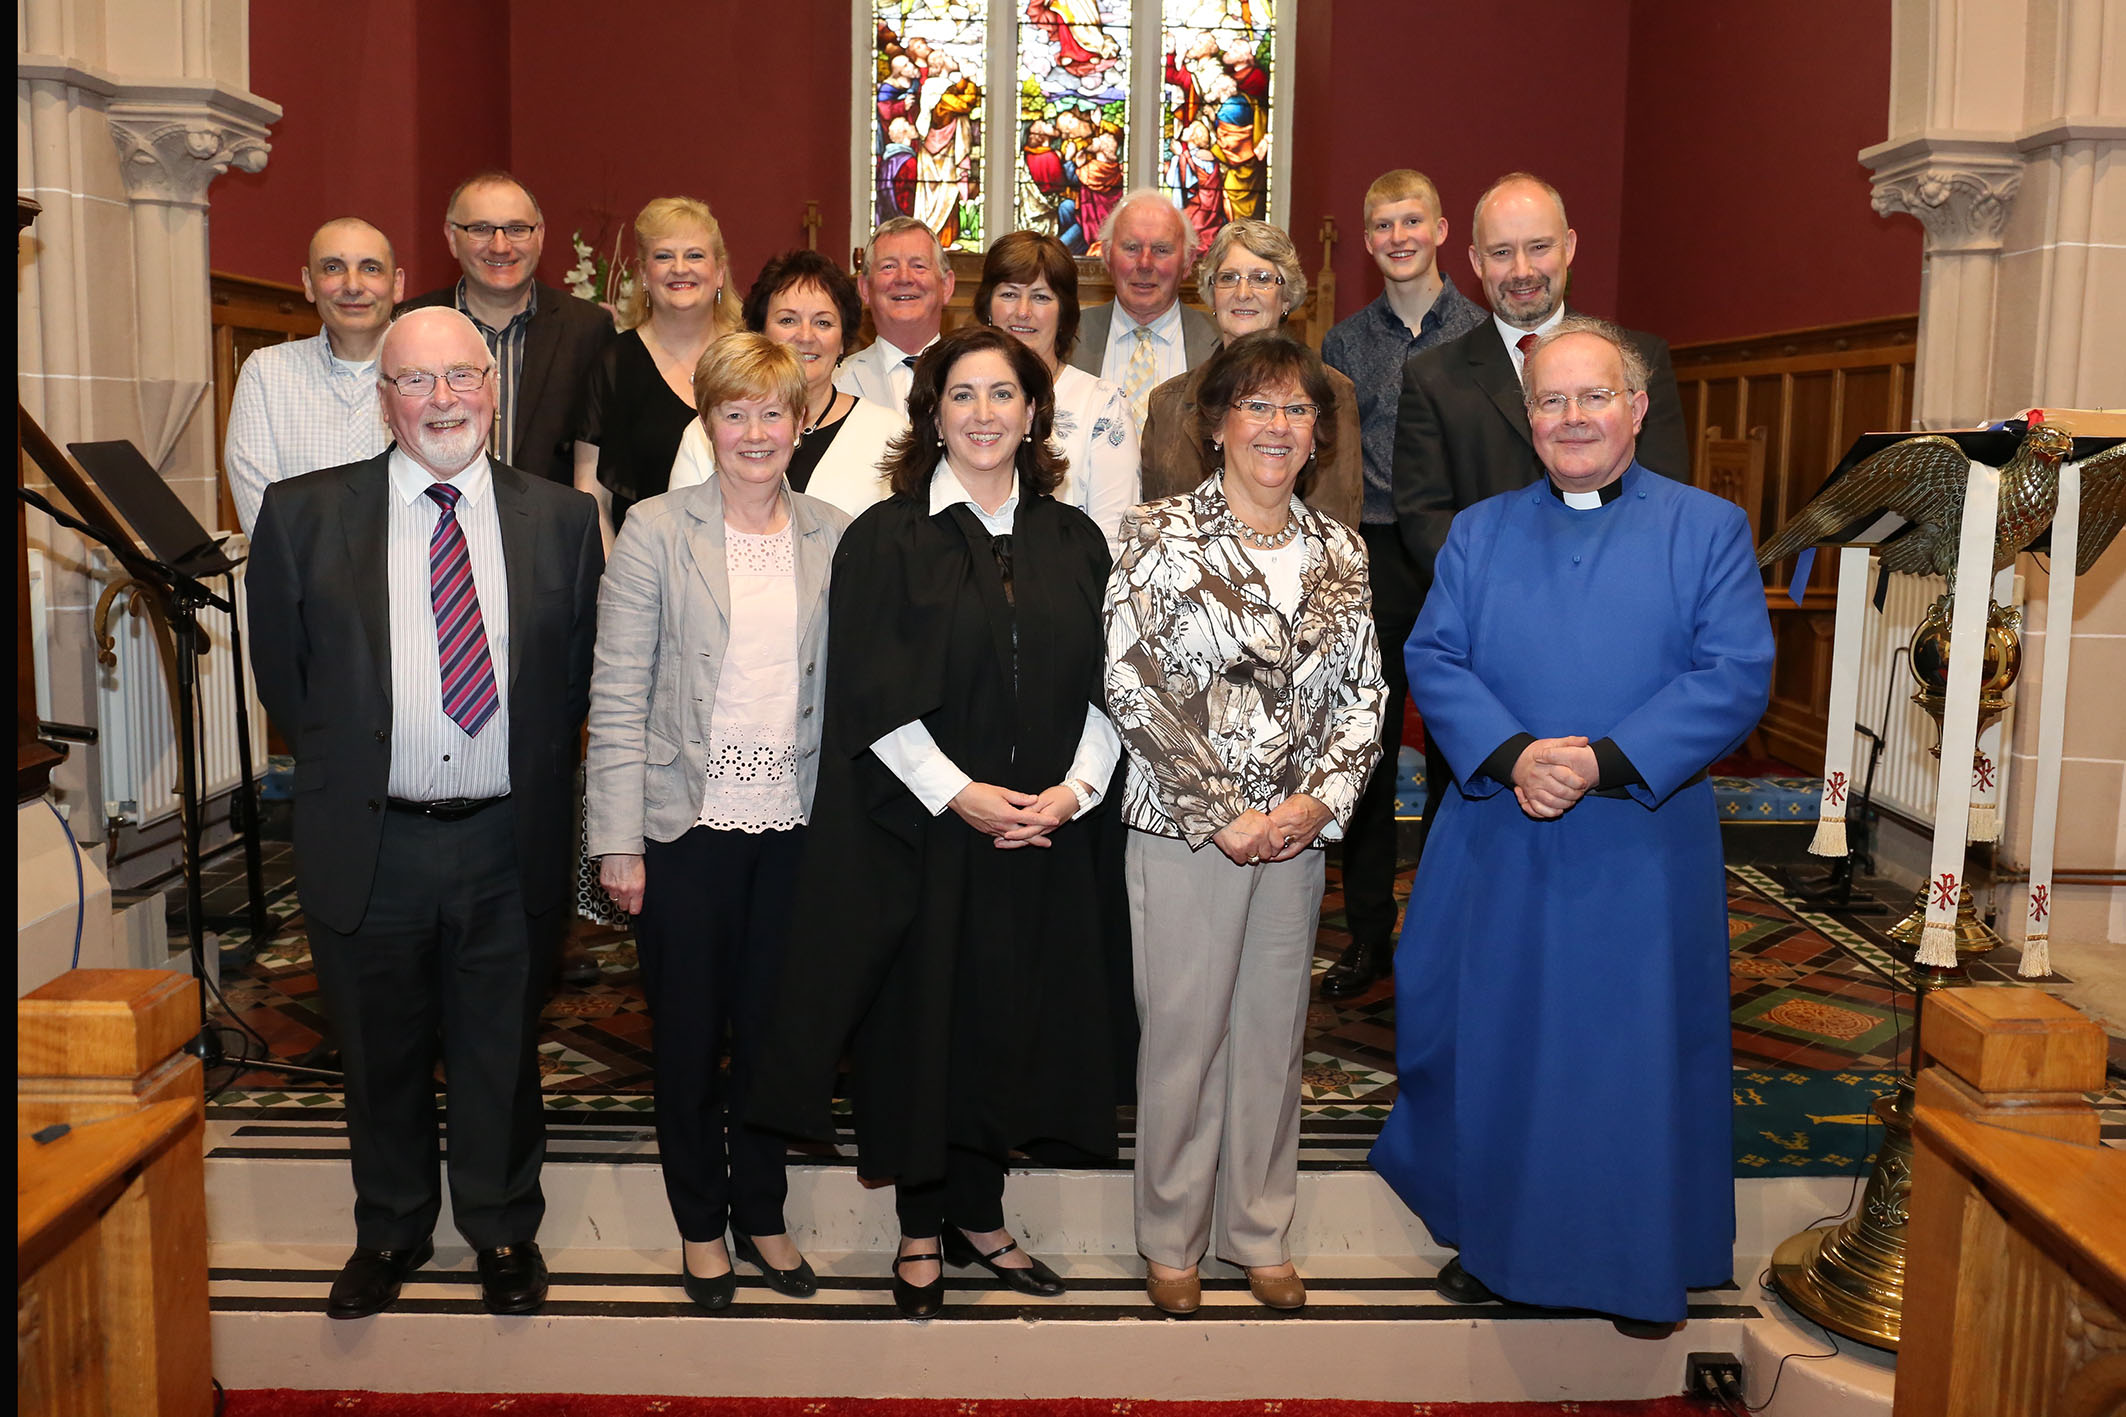 Musicians, singers and readers who took part in the Kilbride recital.